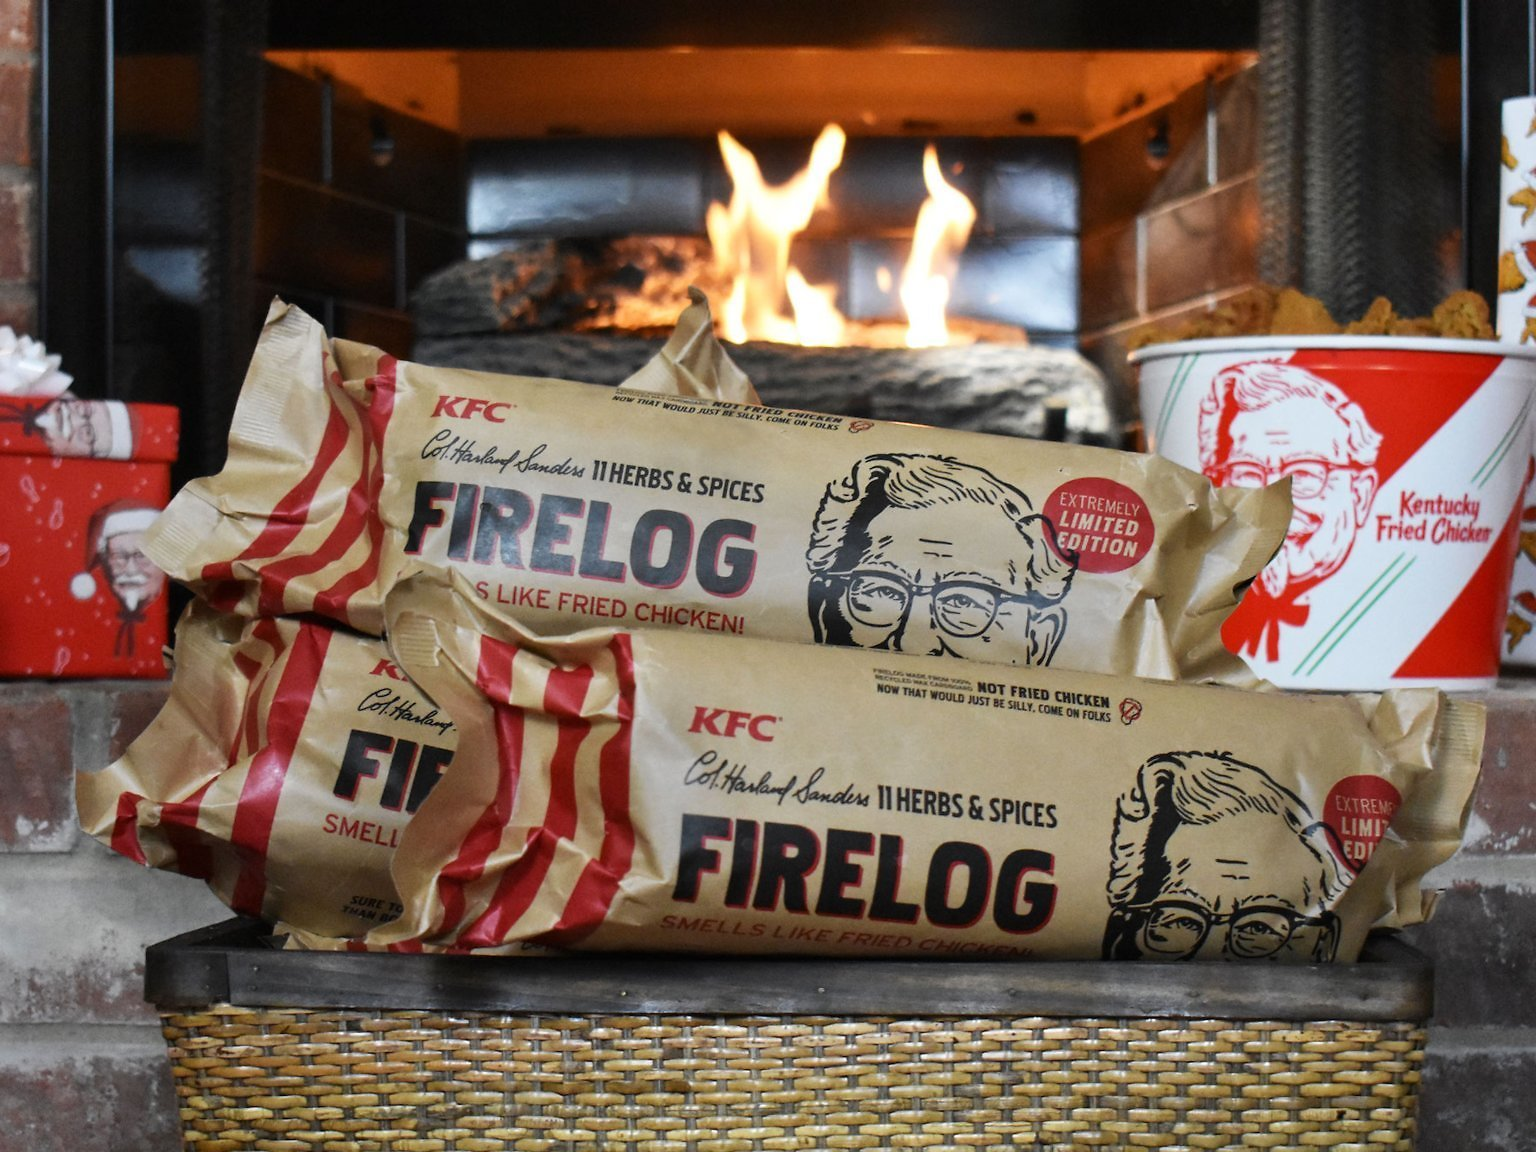 KFC 11 Herbs & Spices Firelog: Smells Like Chicken